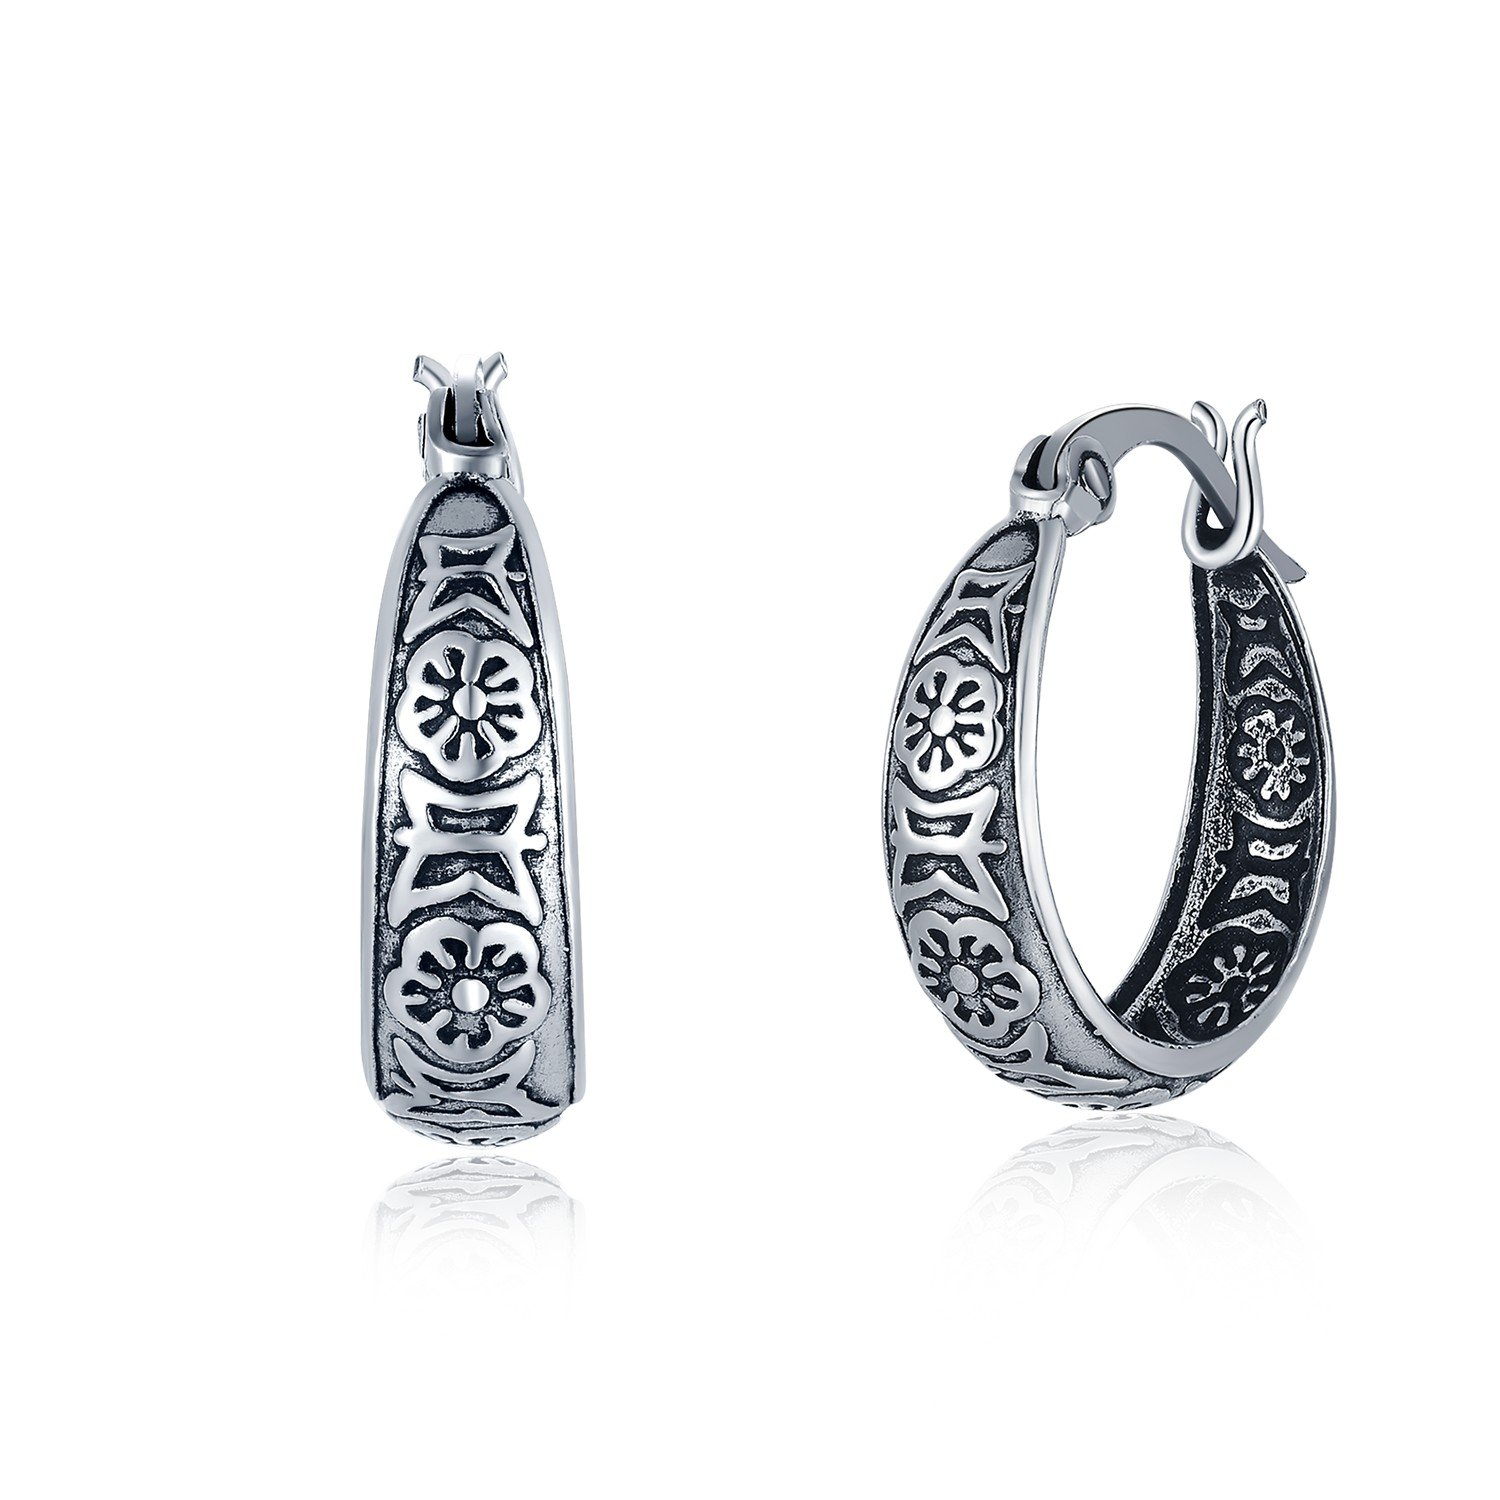 MBLife 925 Sterling Silver Oxidized Tribal Style Hoop Earrings